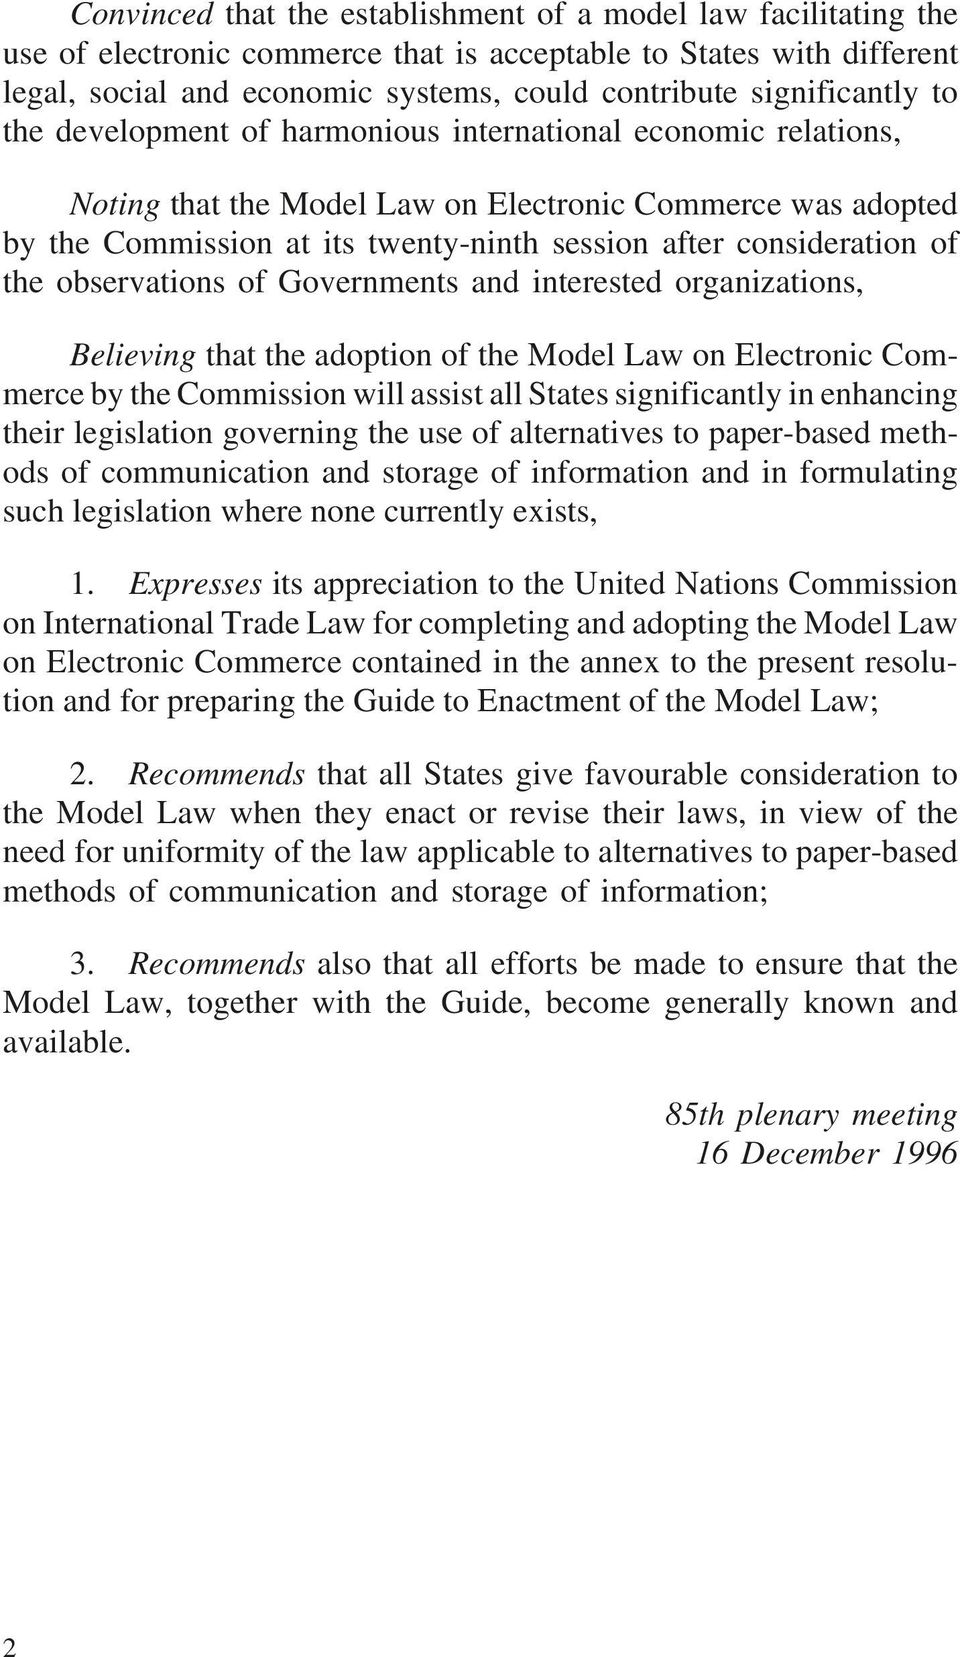 consideration of the observations of Governments and interested organizations, Believing that the adoption of the Model Law on Electronic Commerce by the Commission will assist all States